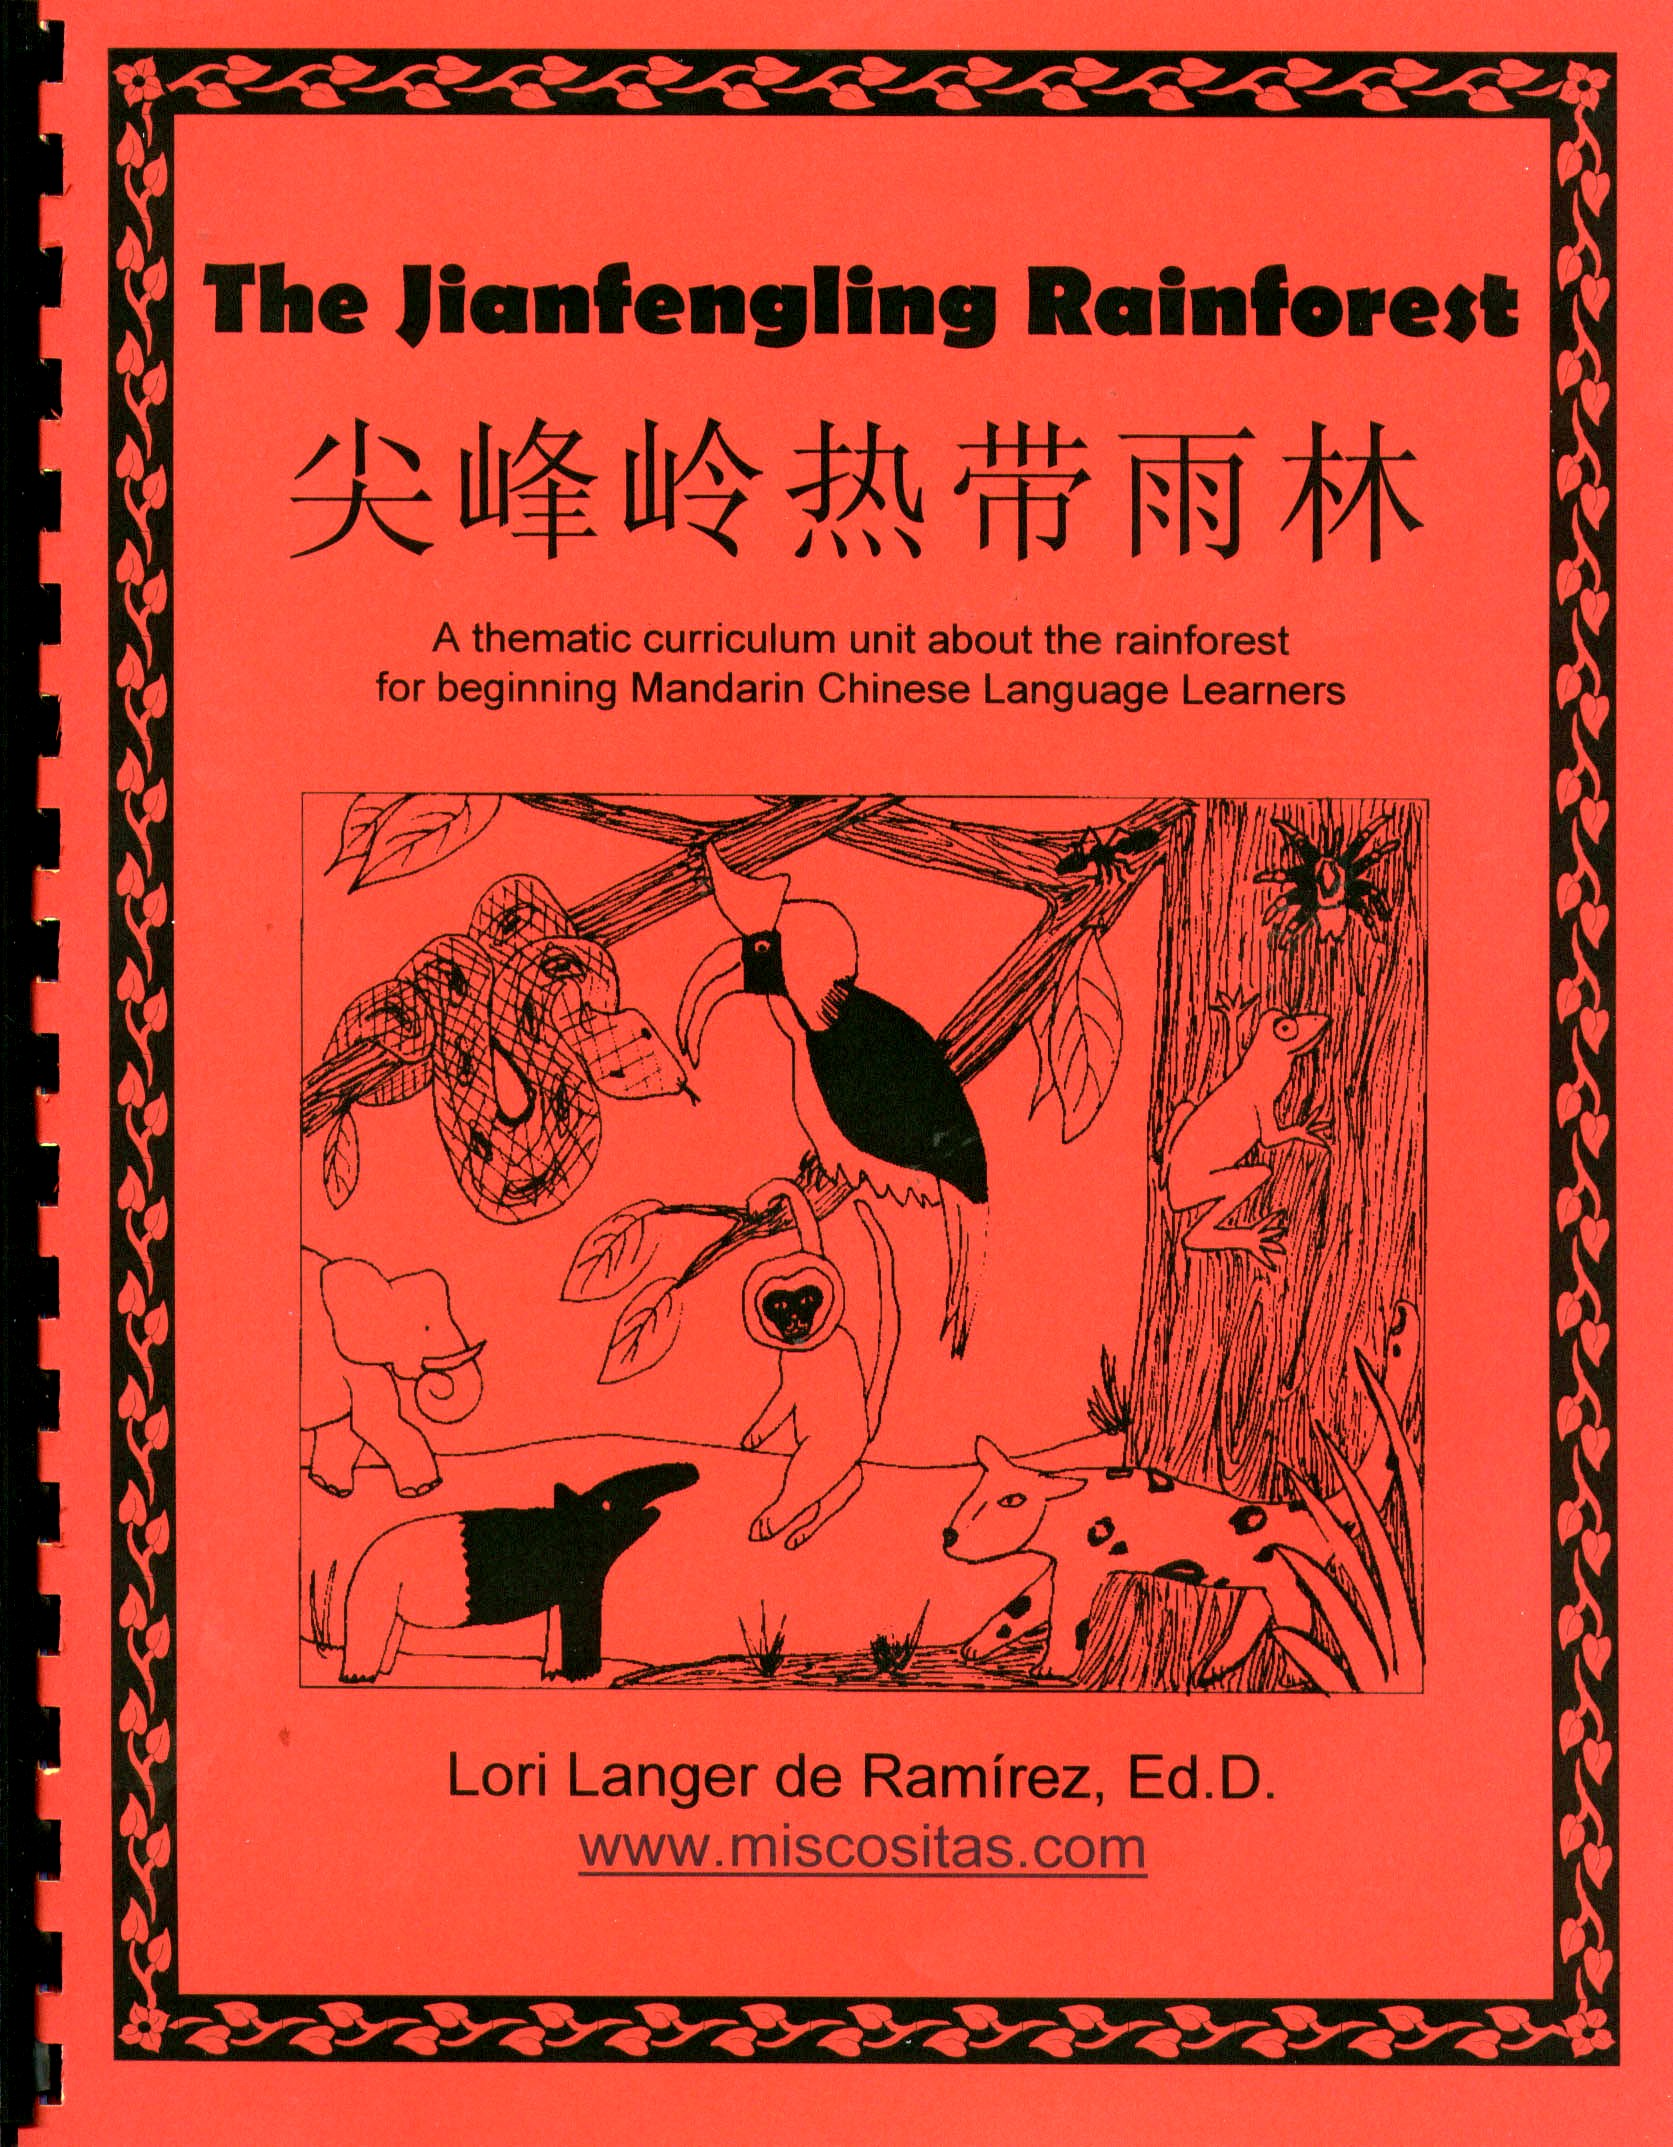 The Jianfengling Rainforest